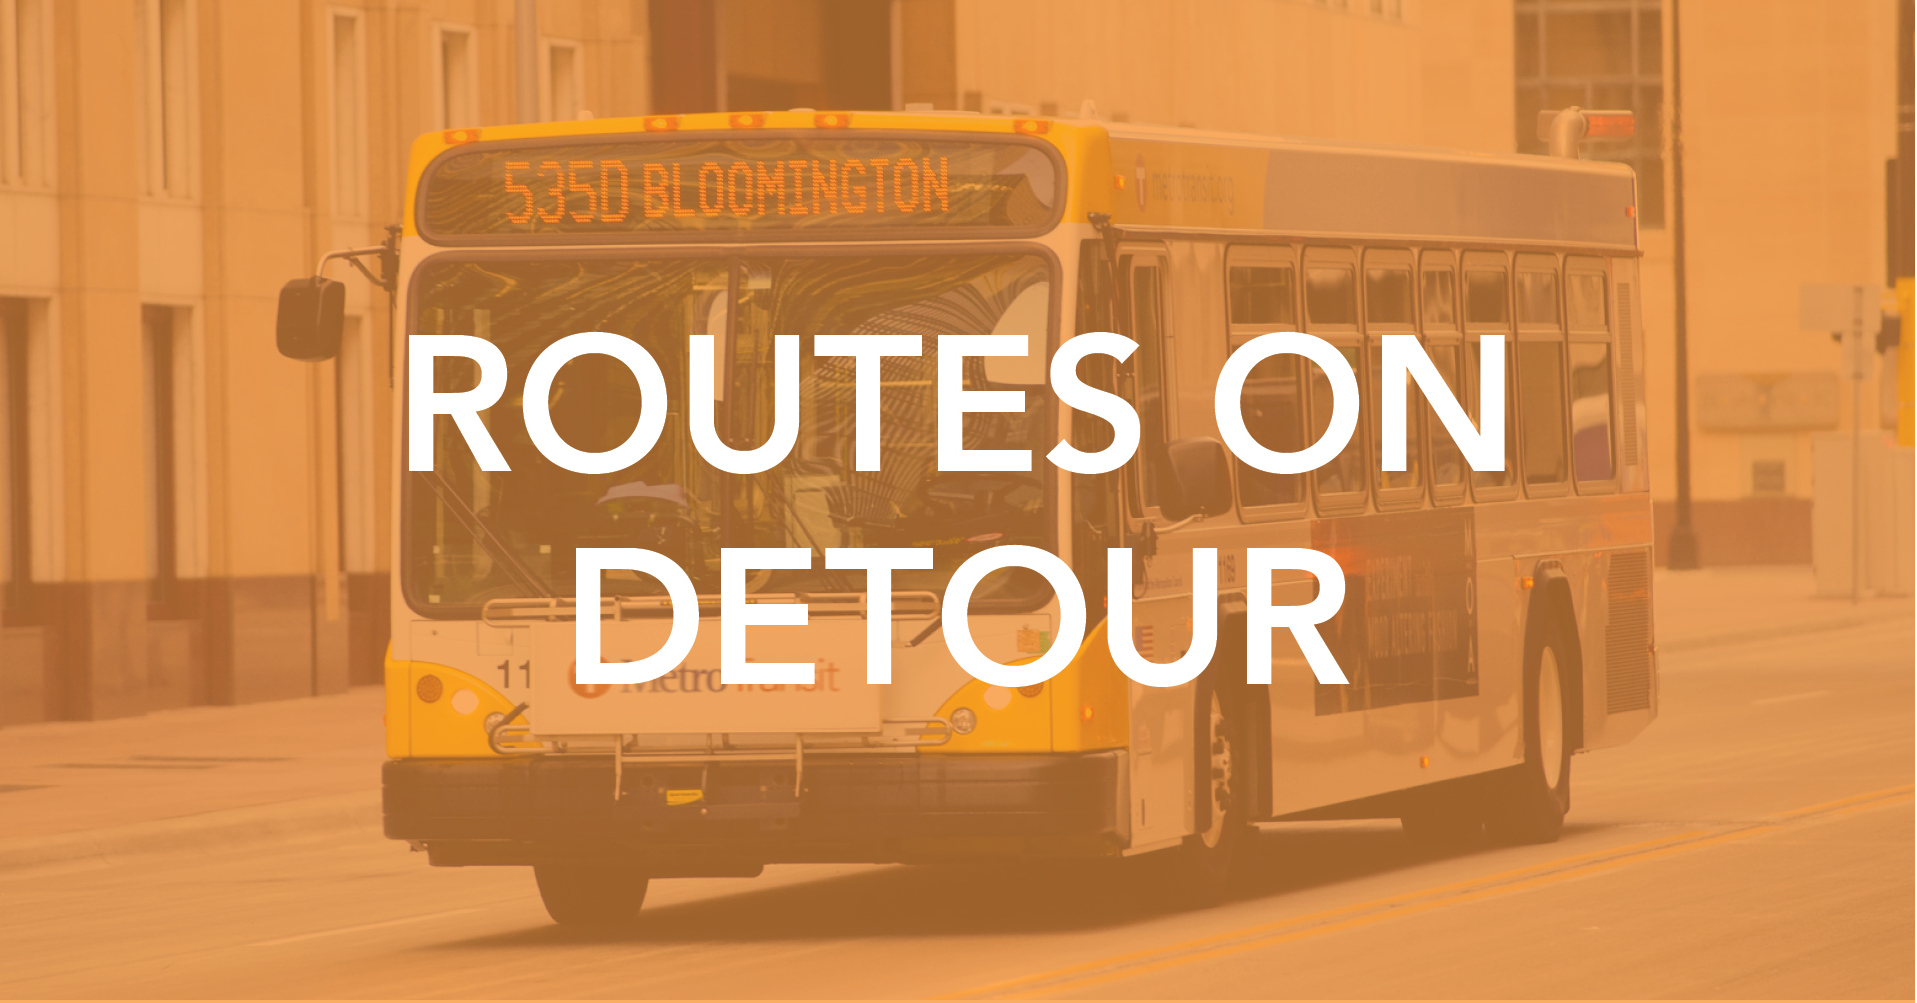 Routes on detour image linked to 35w detours page